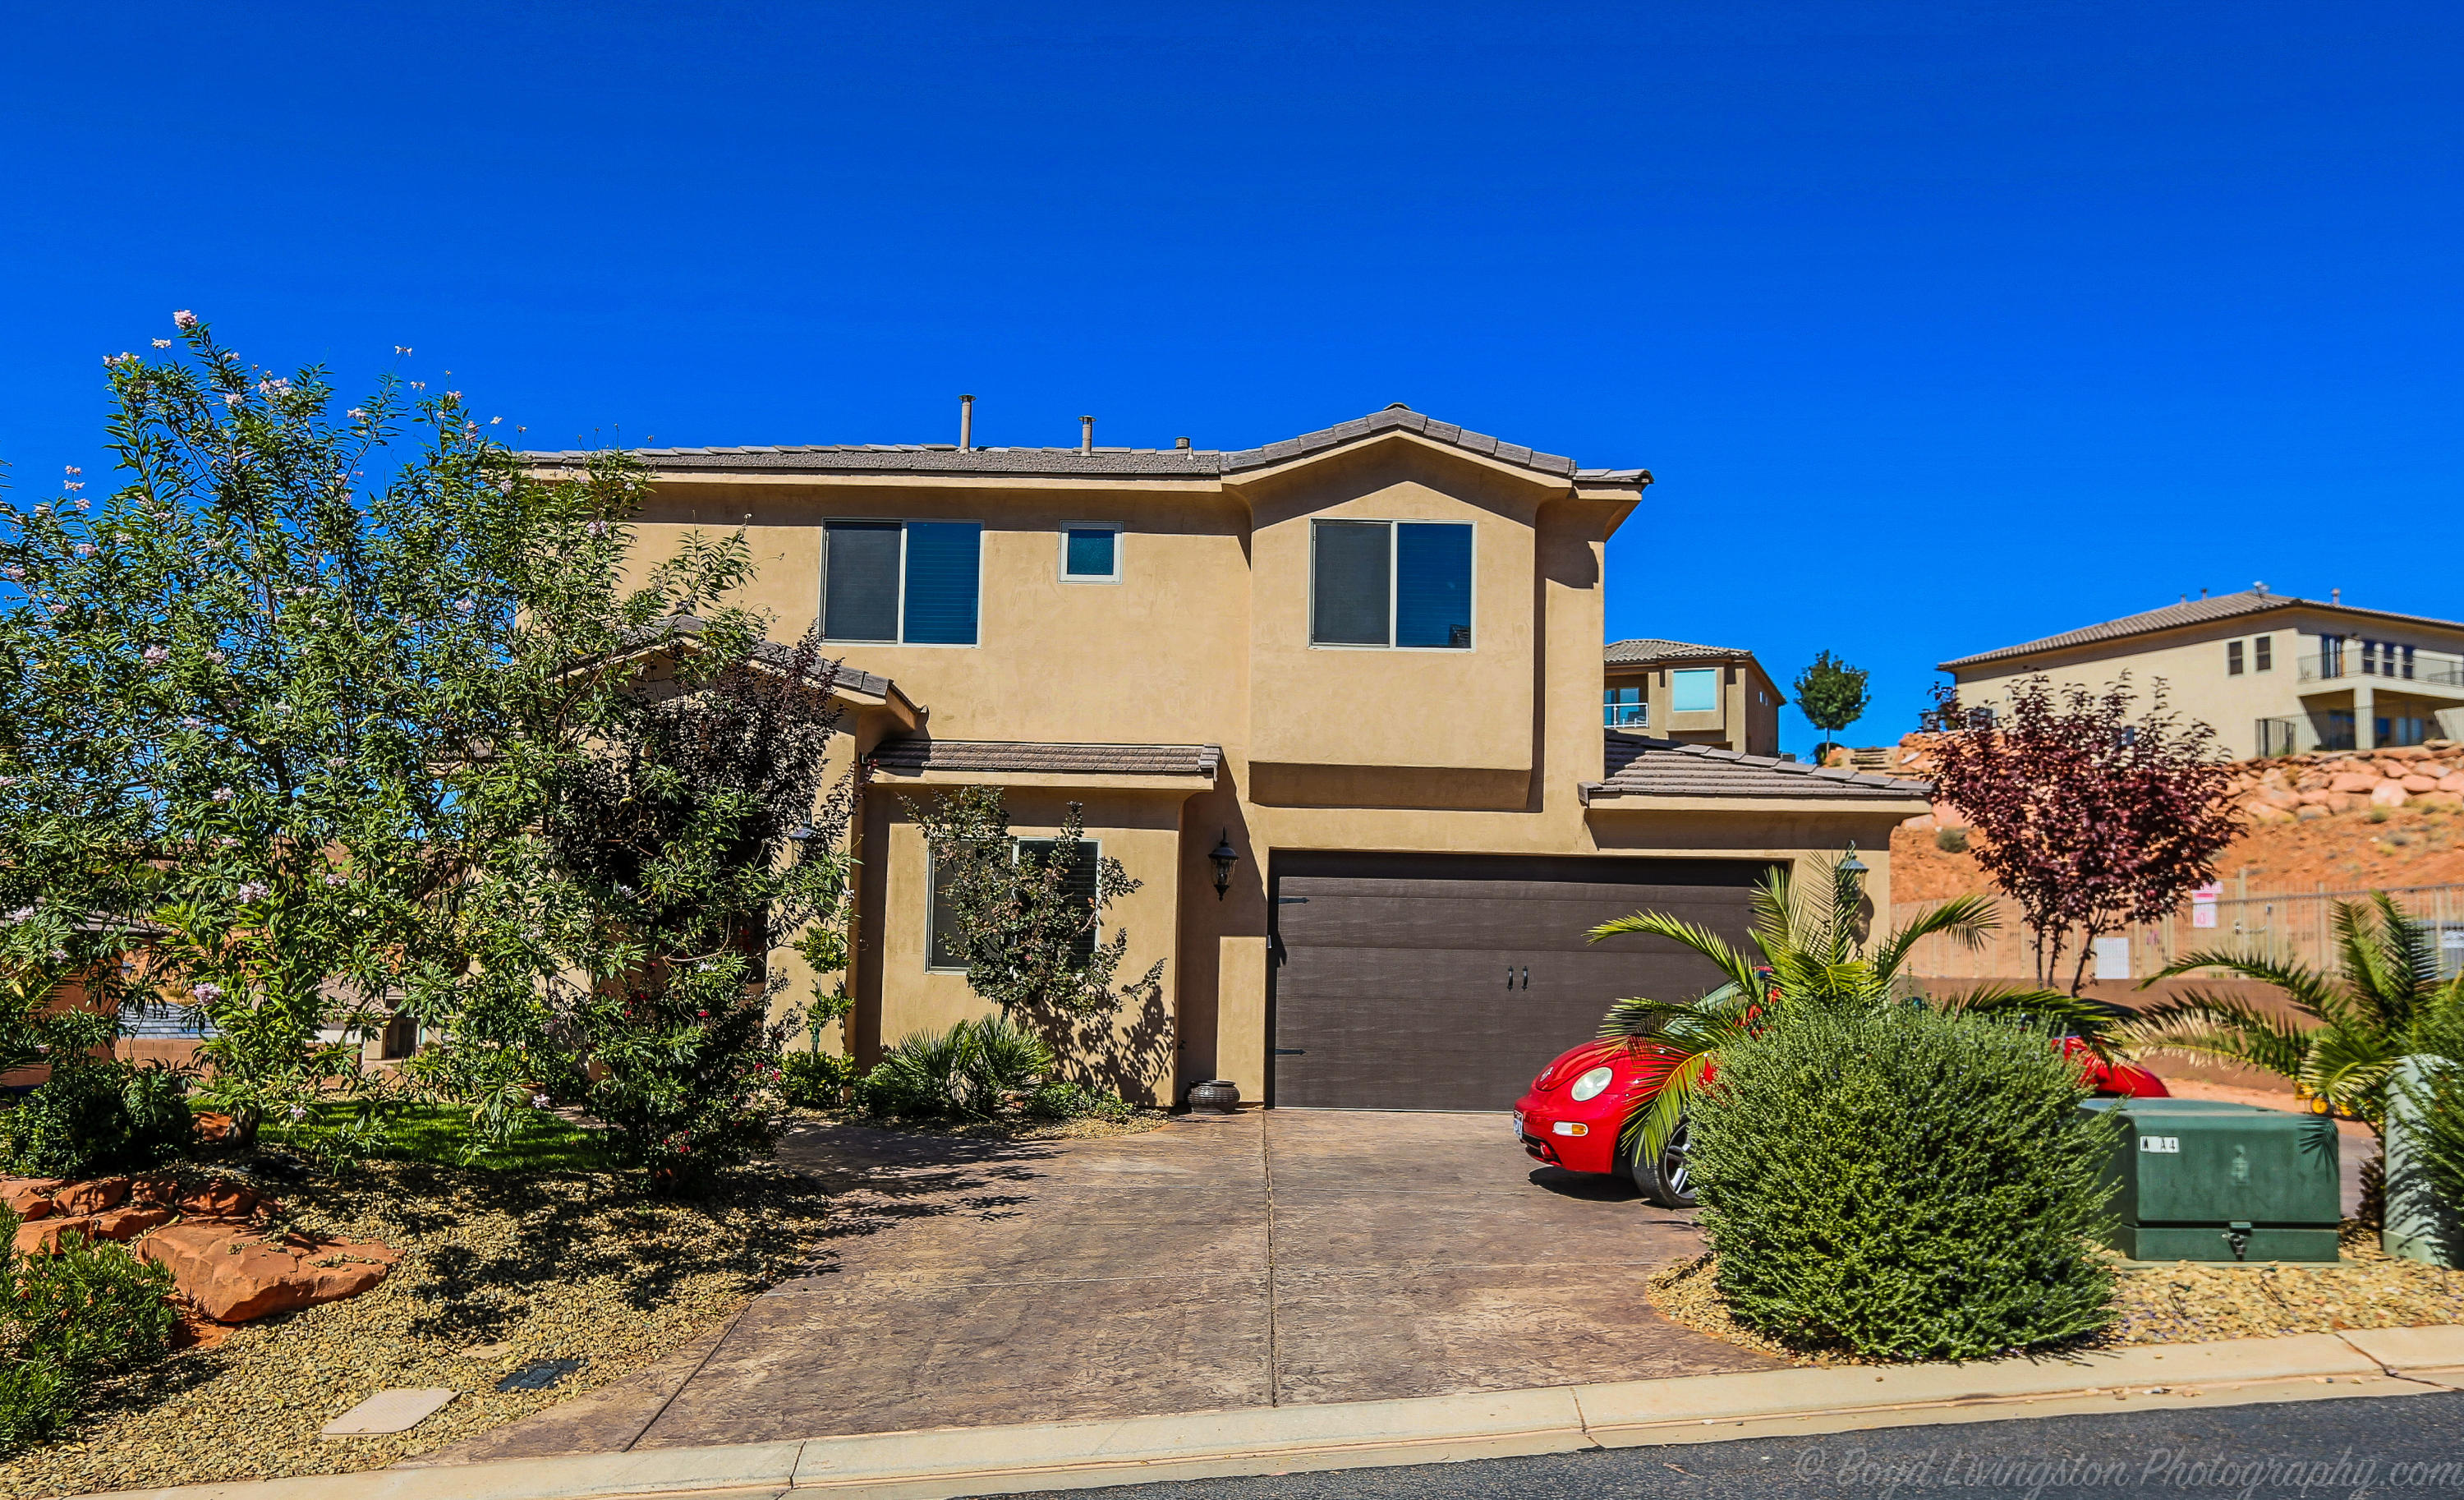 509 Sun Rock Way, Washington Ut 84780